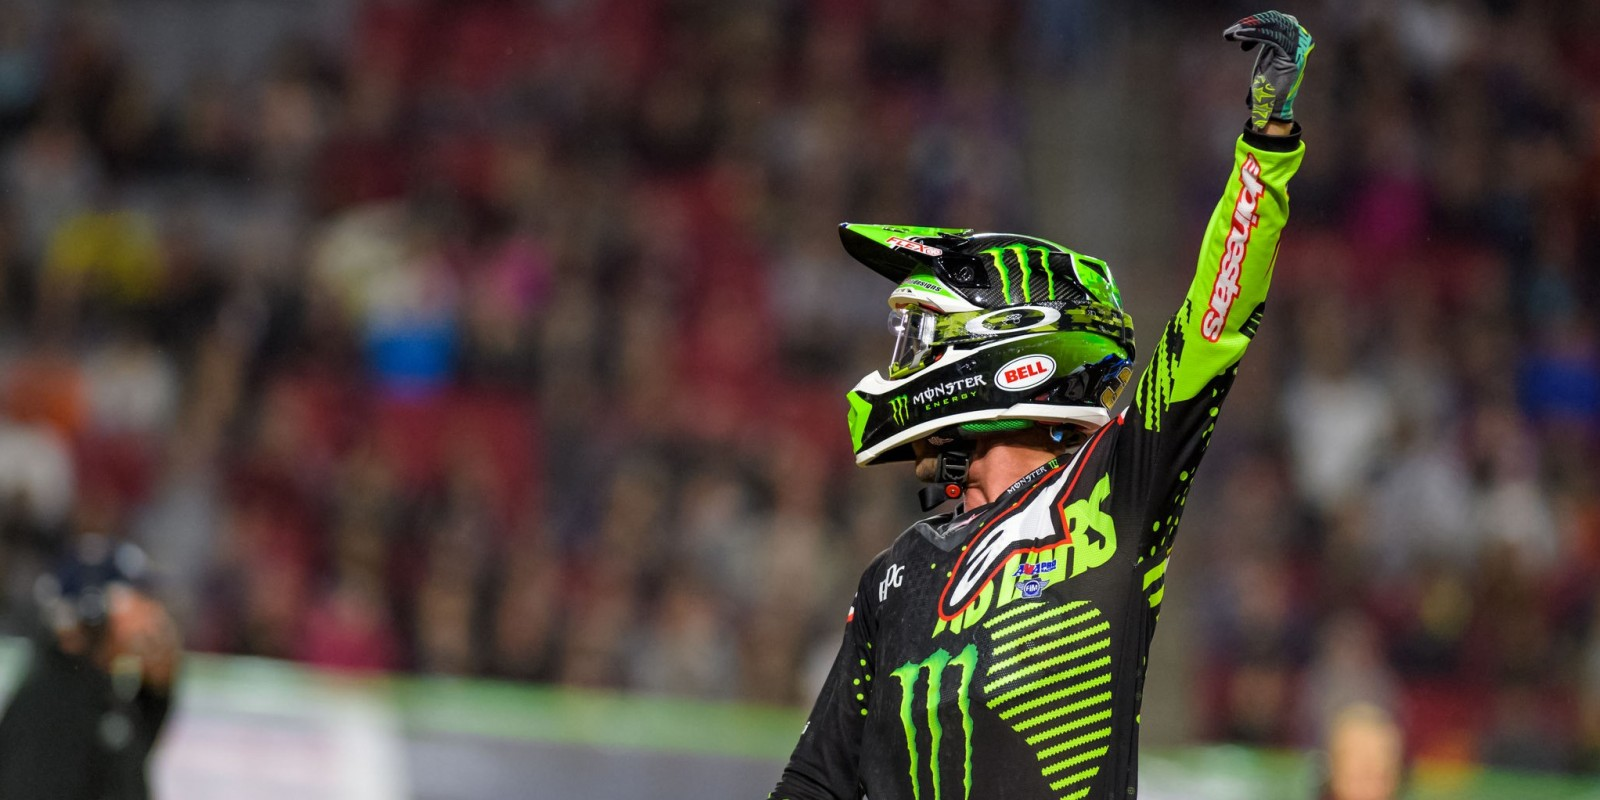 Monster athlete Eli Tomac competing at the 2017 Supercross in Glendale, Arizona